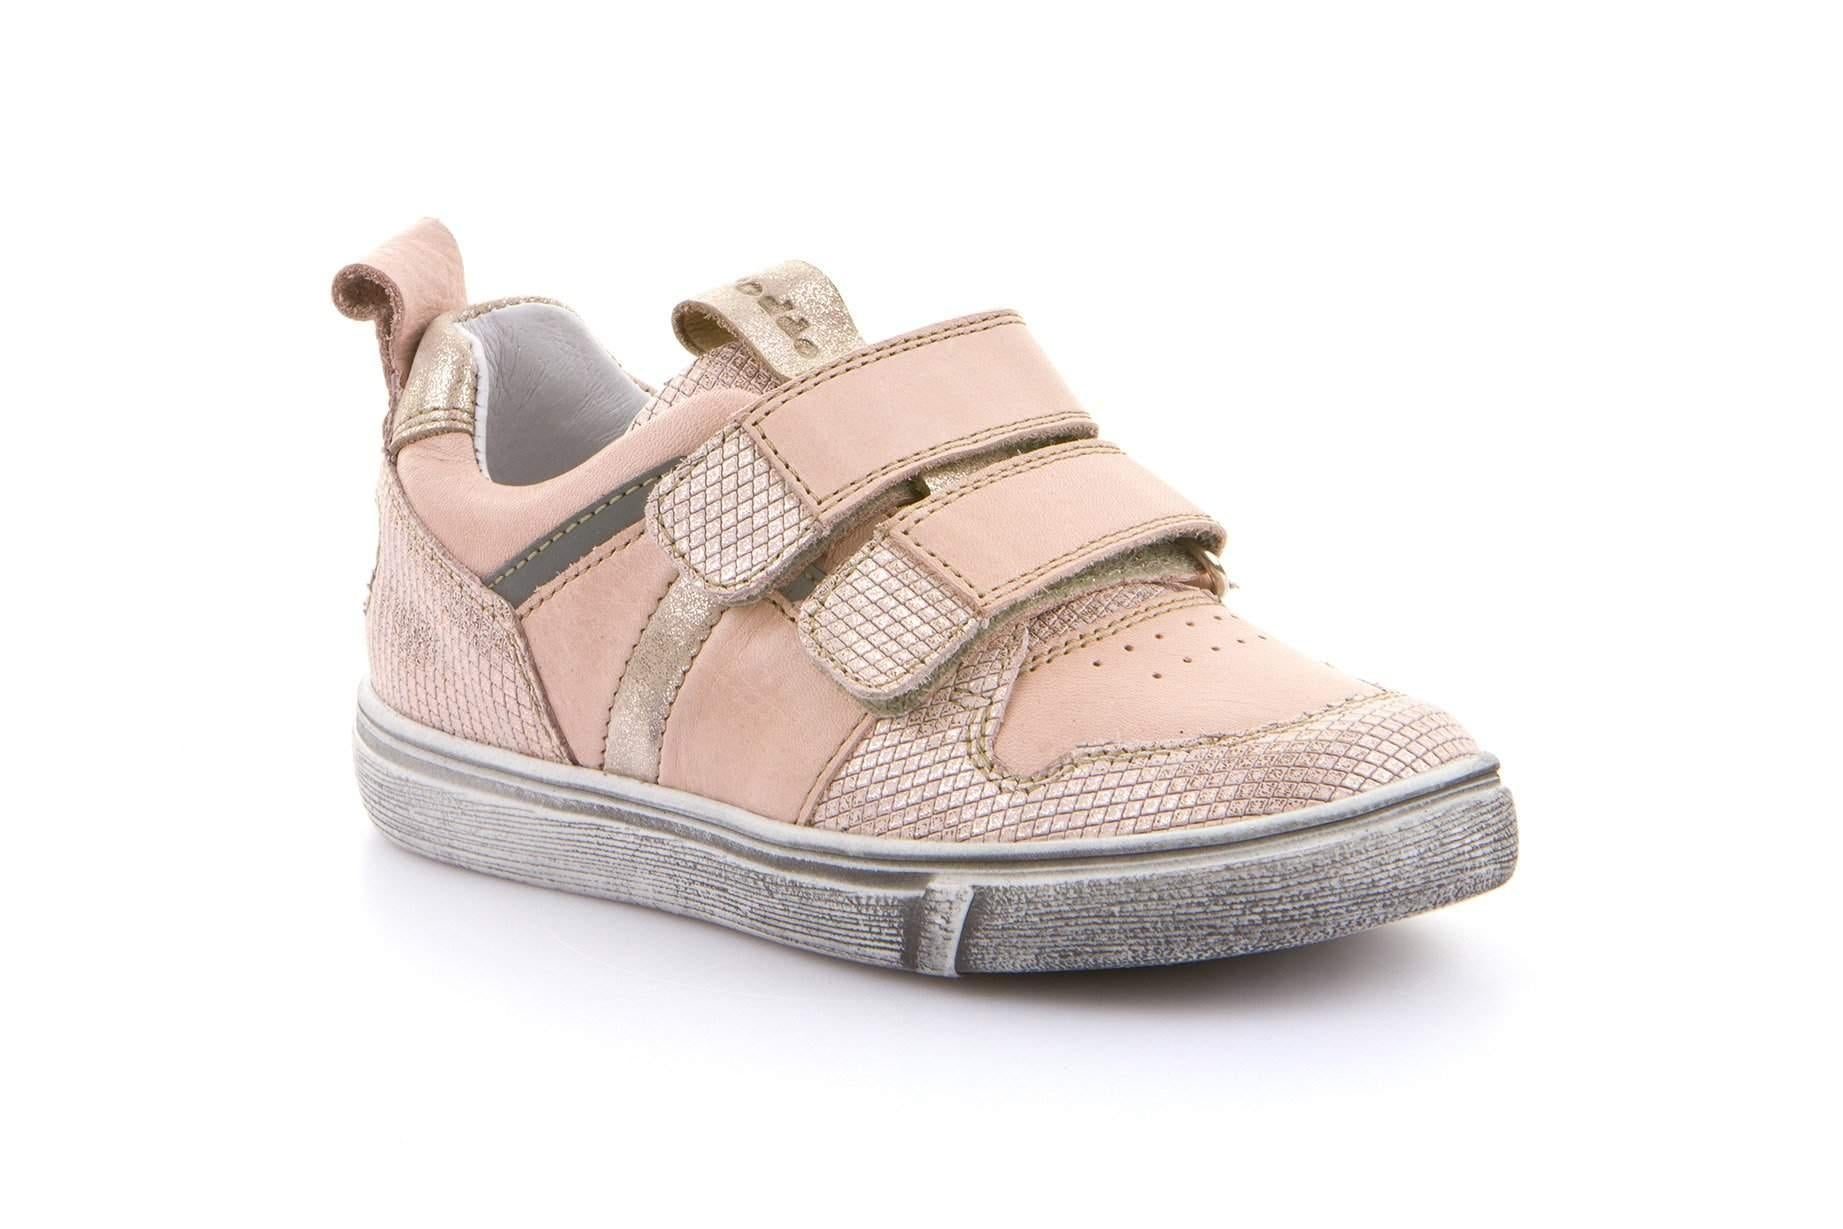 Froddo/G3130124-9/Pink/Girls Leather Shoes /Little Kid - ShoeKid.ca